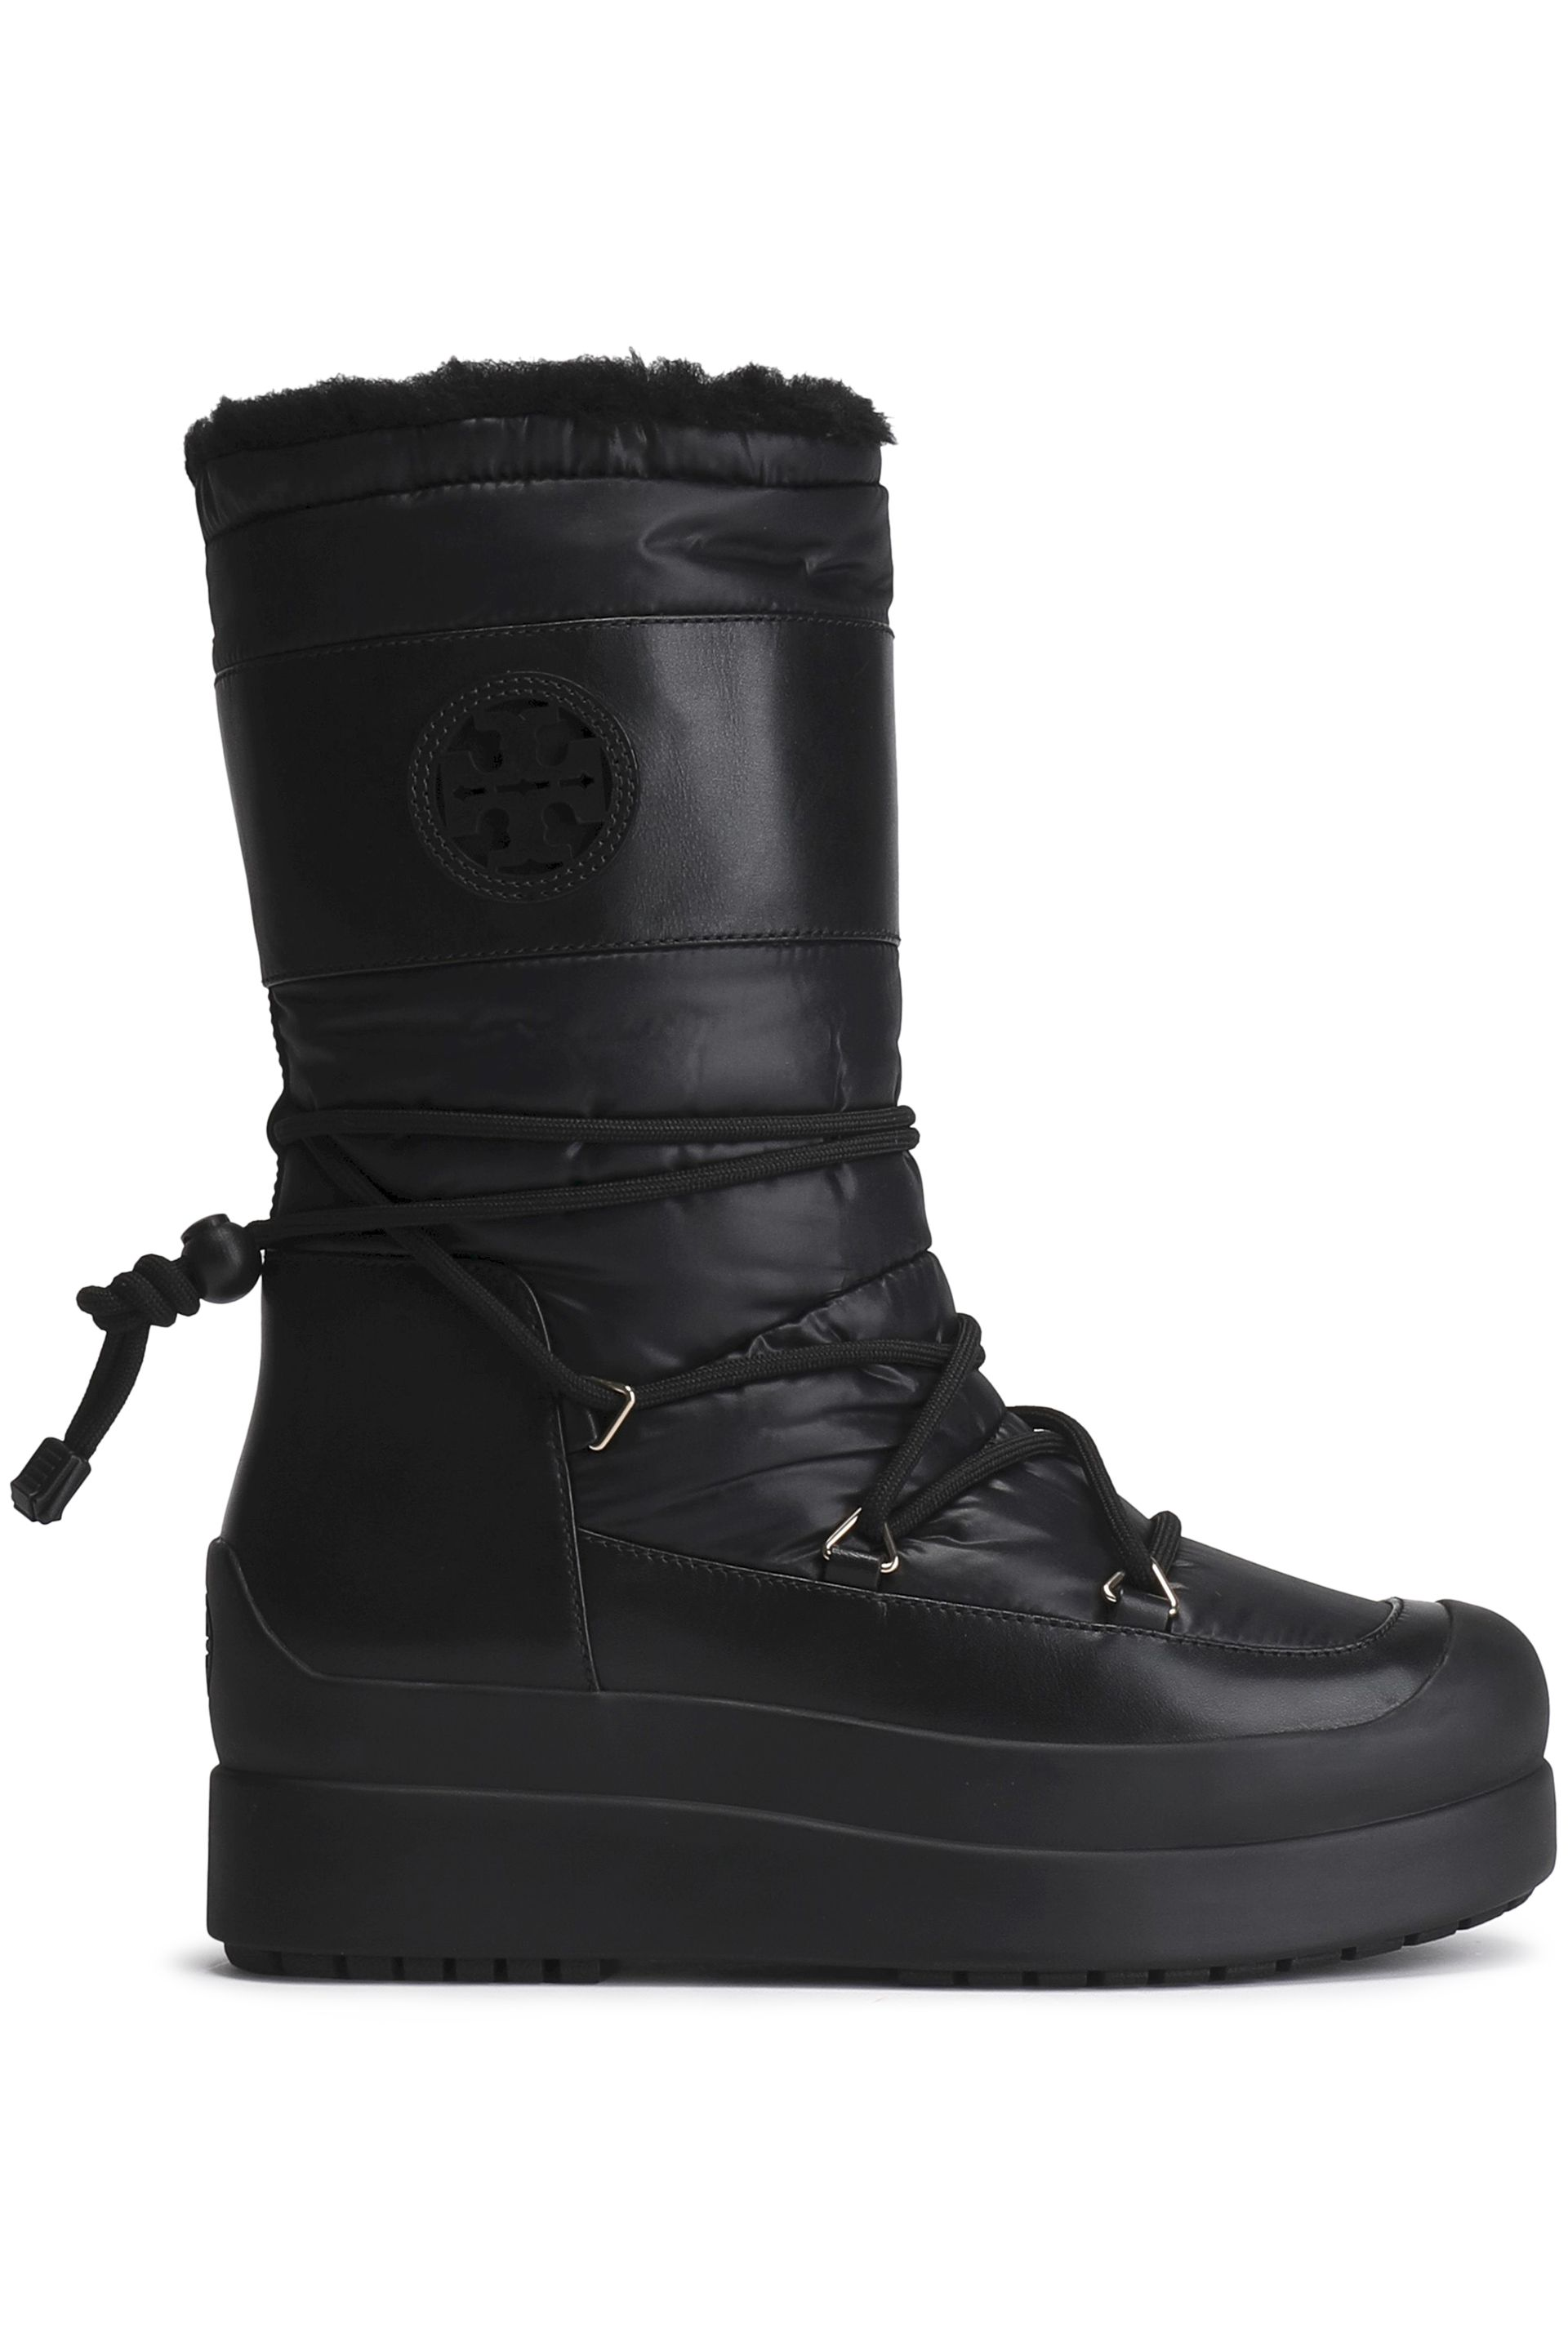 5a1f4dbf498b Shop Tory Burch Boots for Women - Obsessory